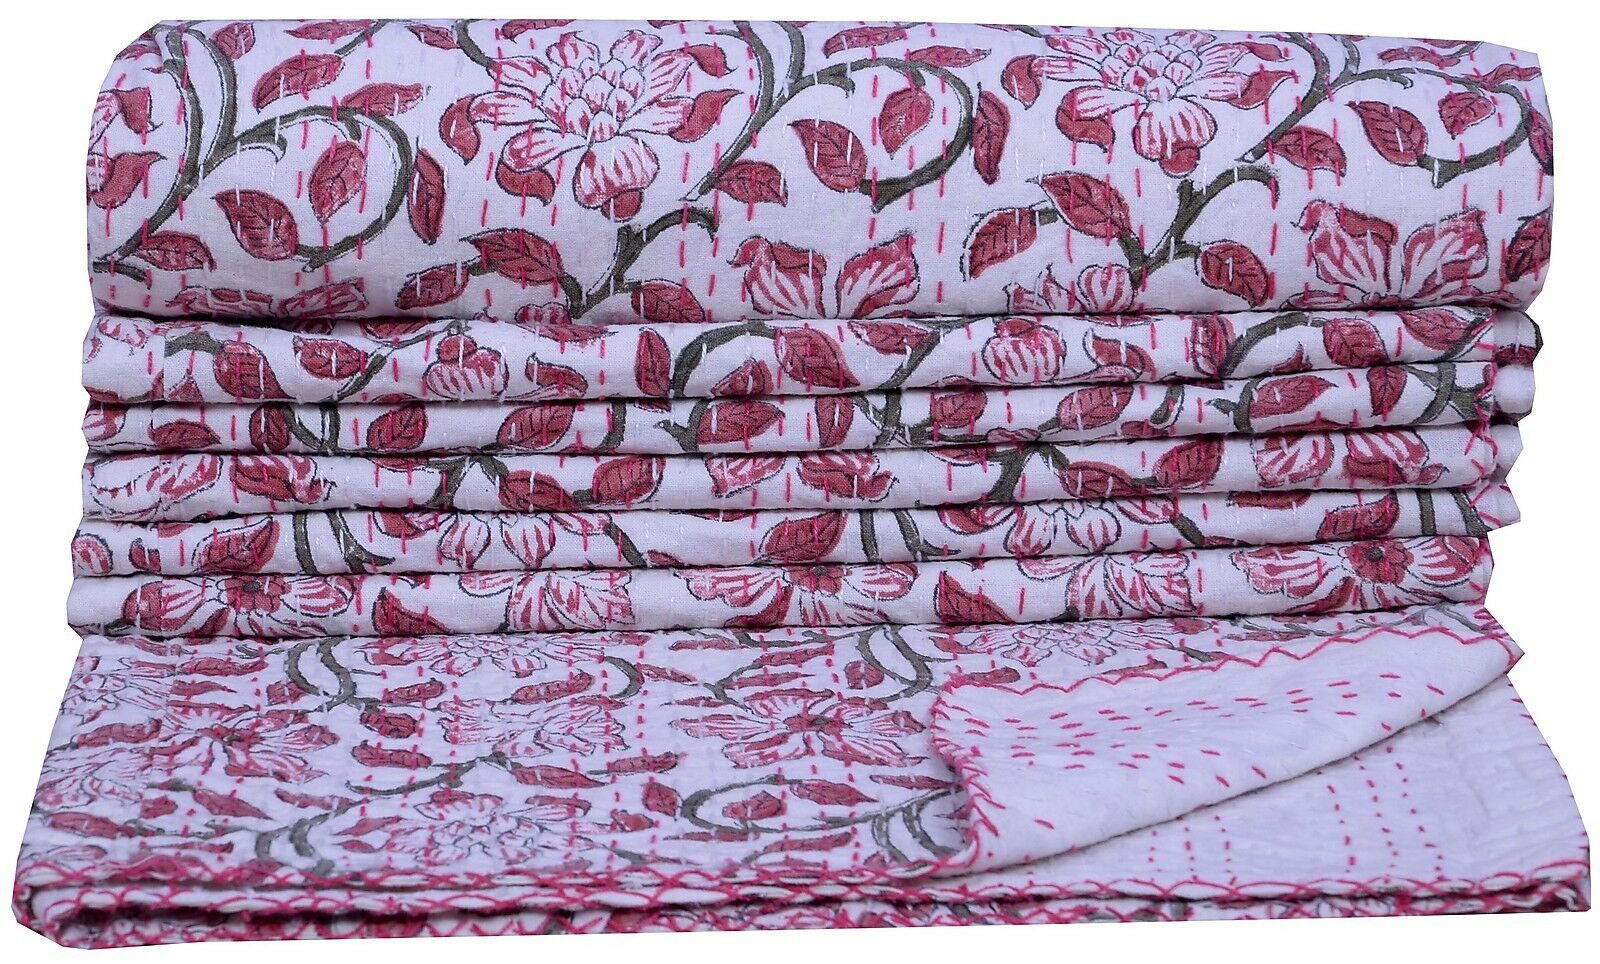 Indian Floral Print Kantha Quilt Twin Bedspread Home Decor Bedding White Blanket